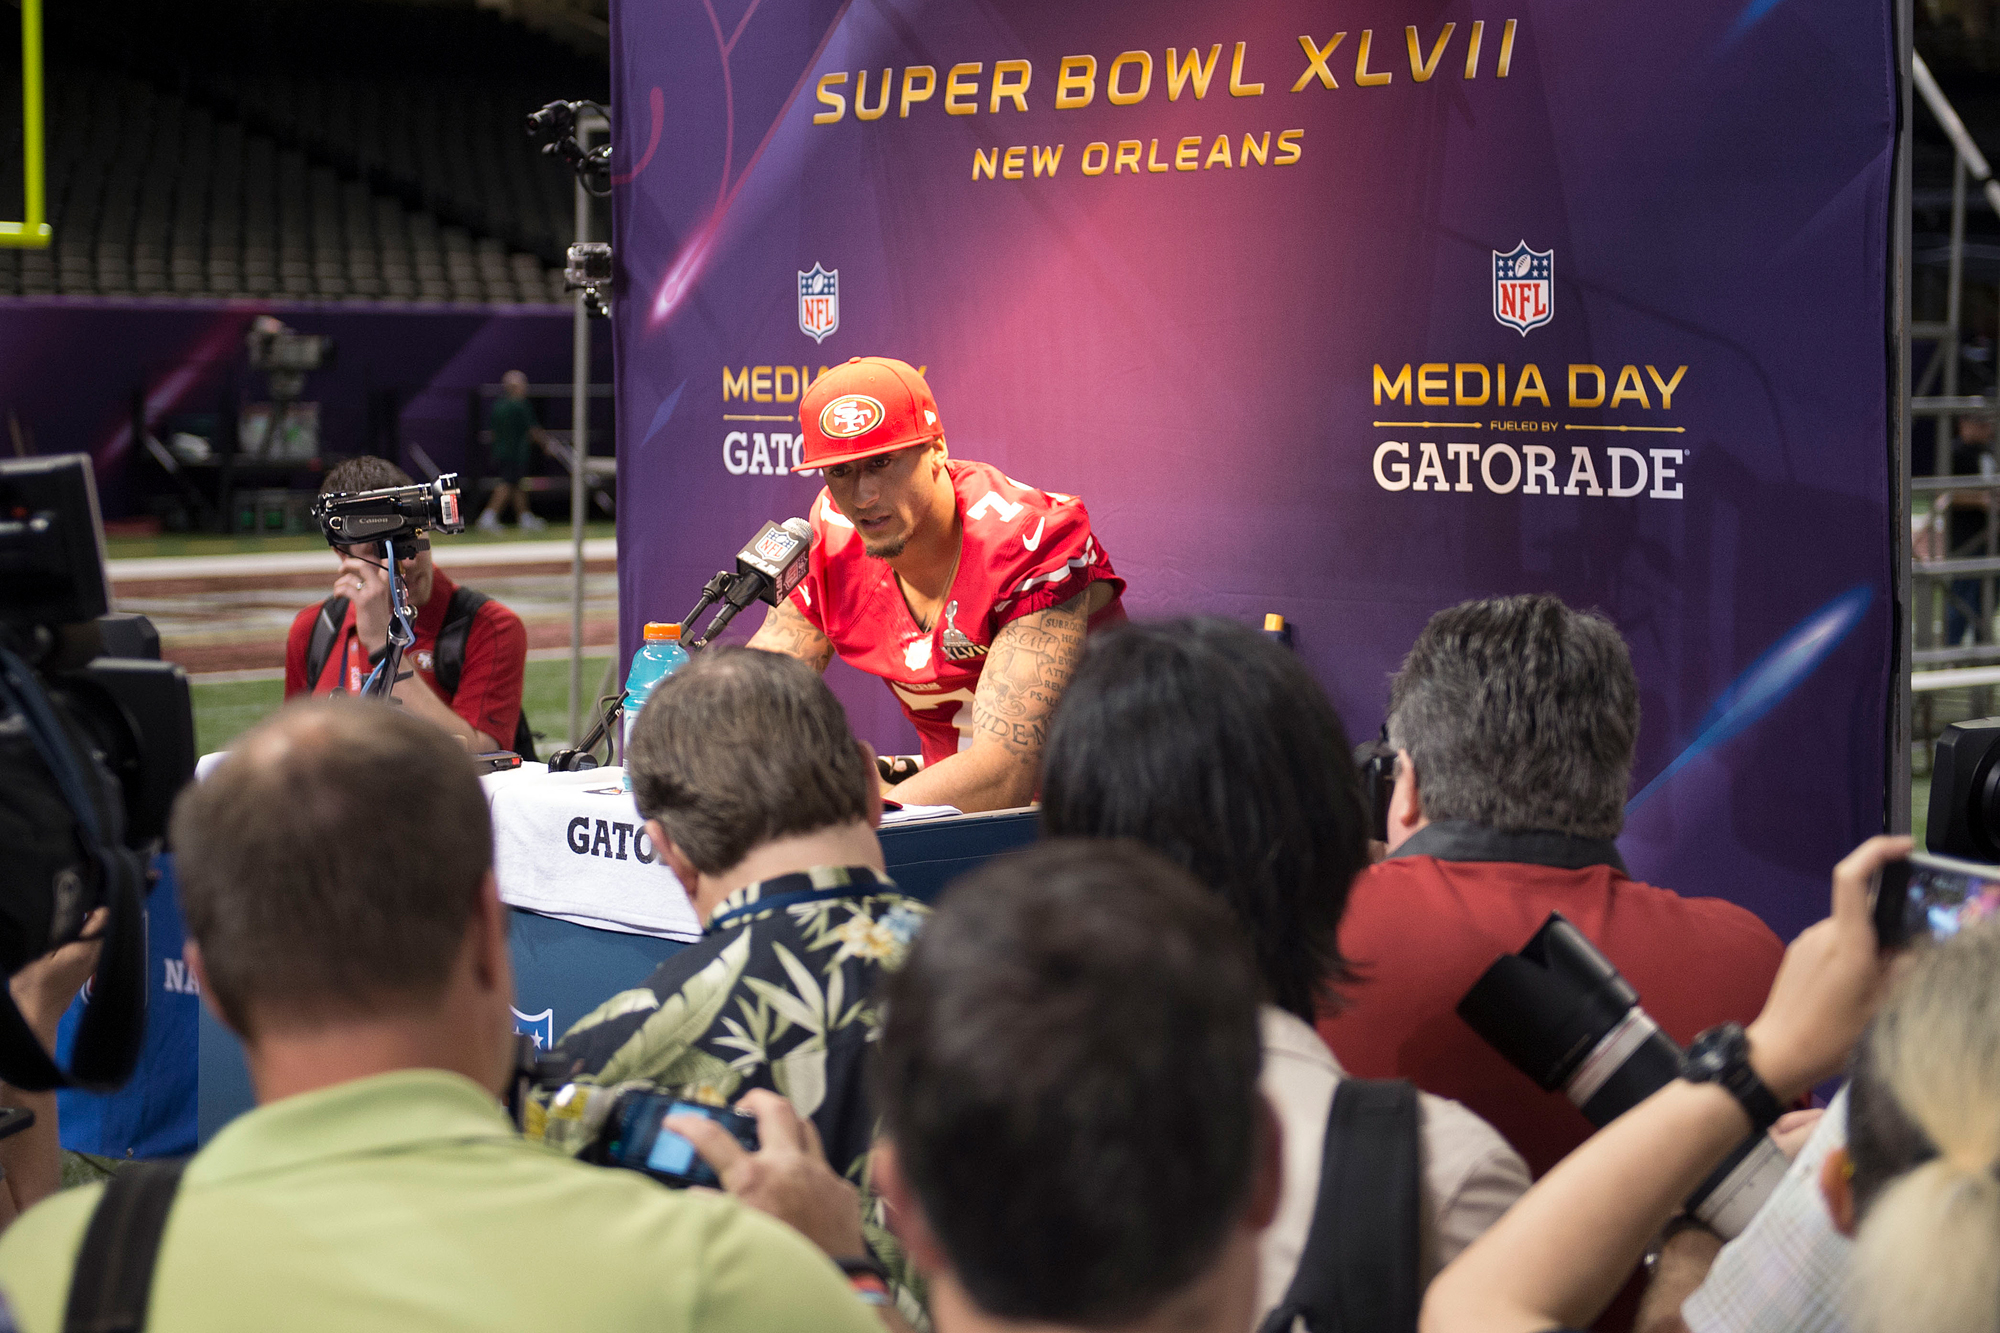 Quarterback Colin Kaepernick of the San Francisco 49ers answers questions during Super Bowl Media Day on Tuesday, January 29, 2013, in New Orleans, Louisiana.